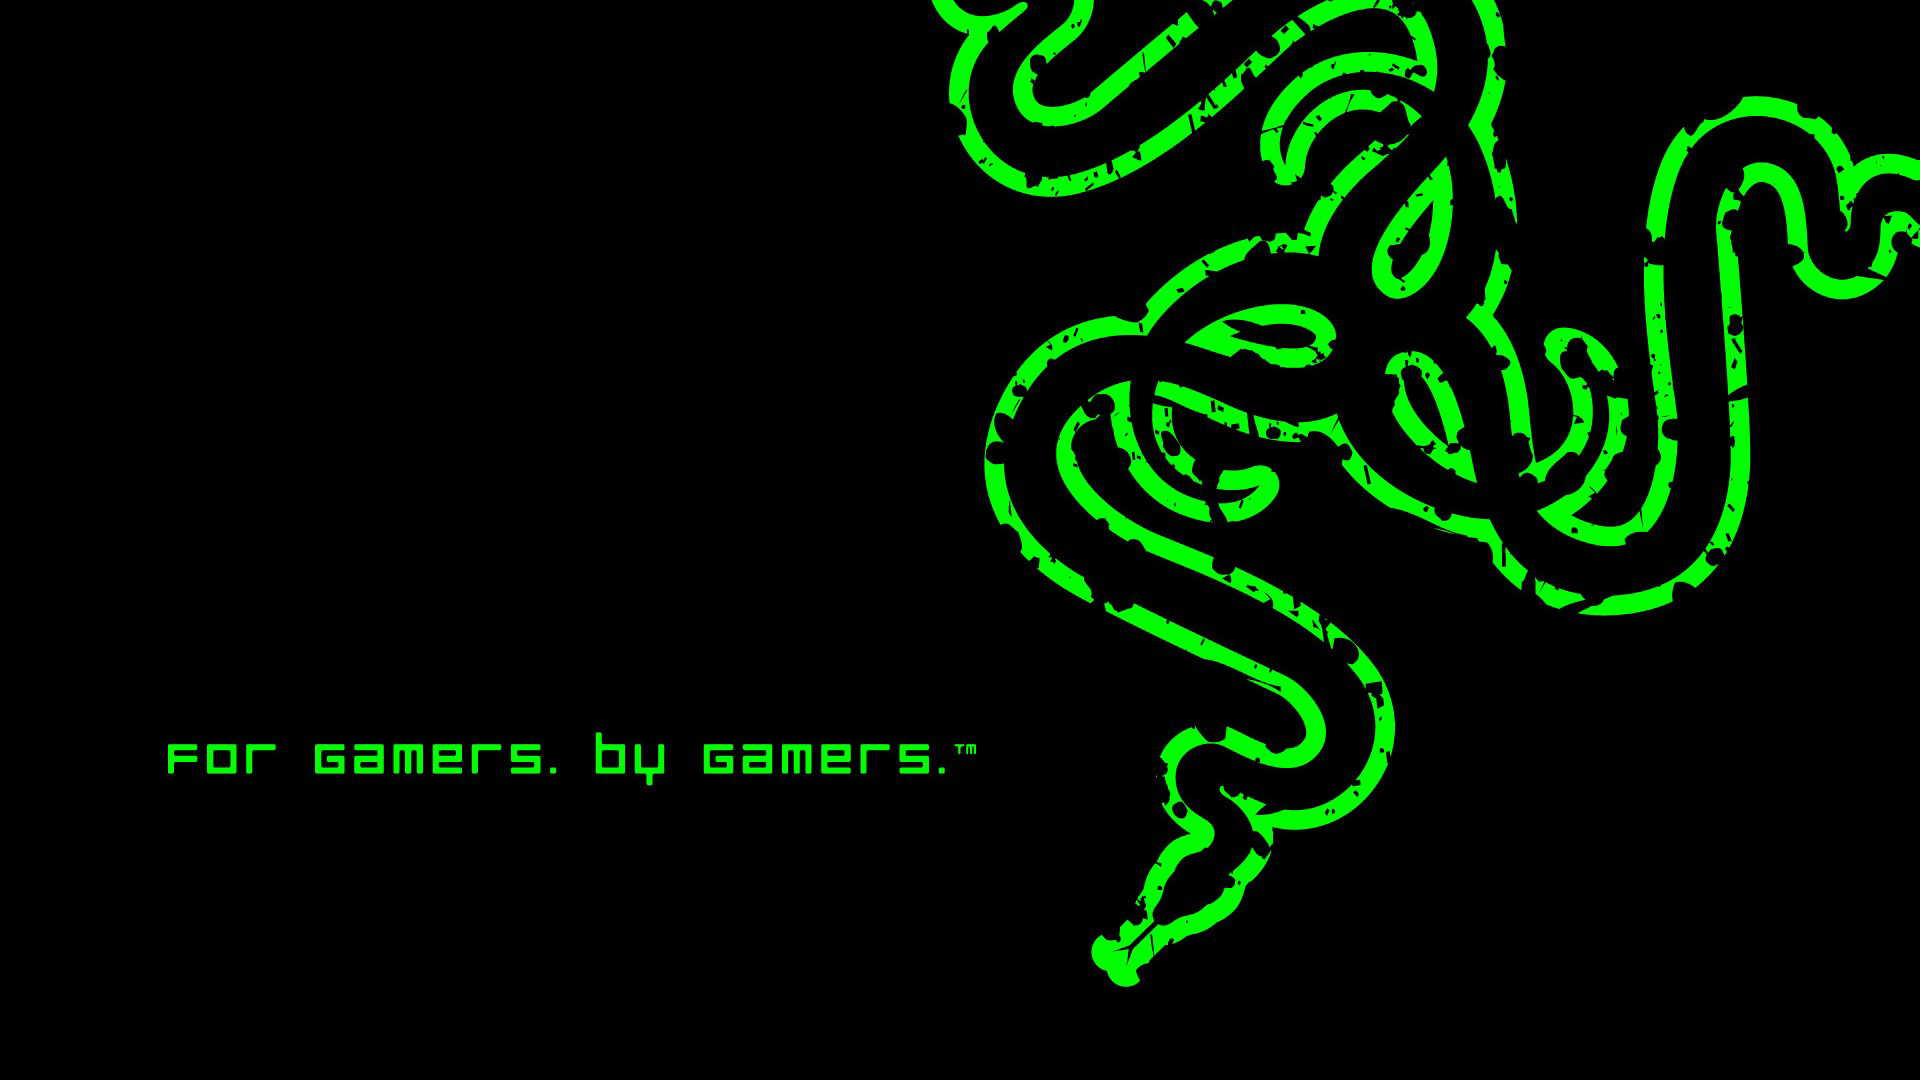 for gamers by gamers black background hd 1920x1080 1080p wallpaper 1920x1080